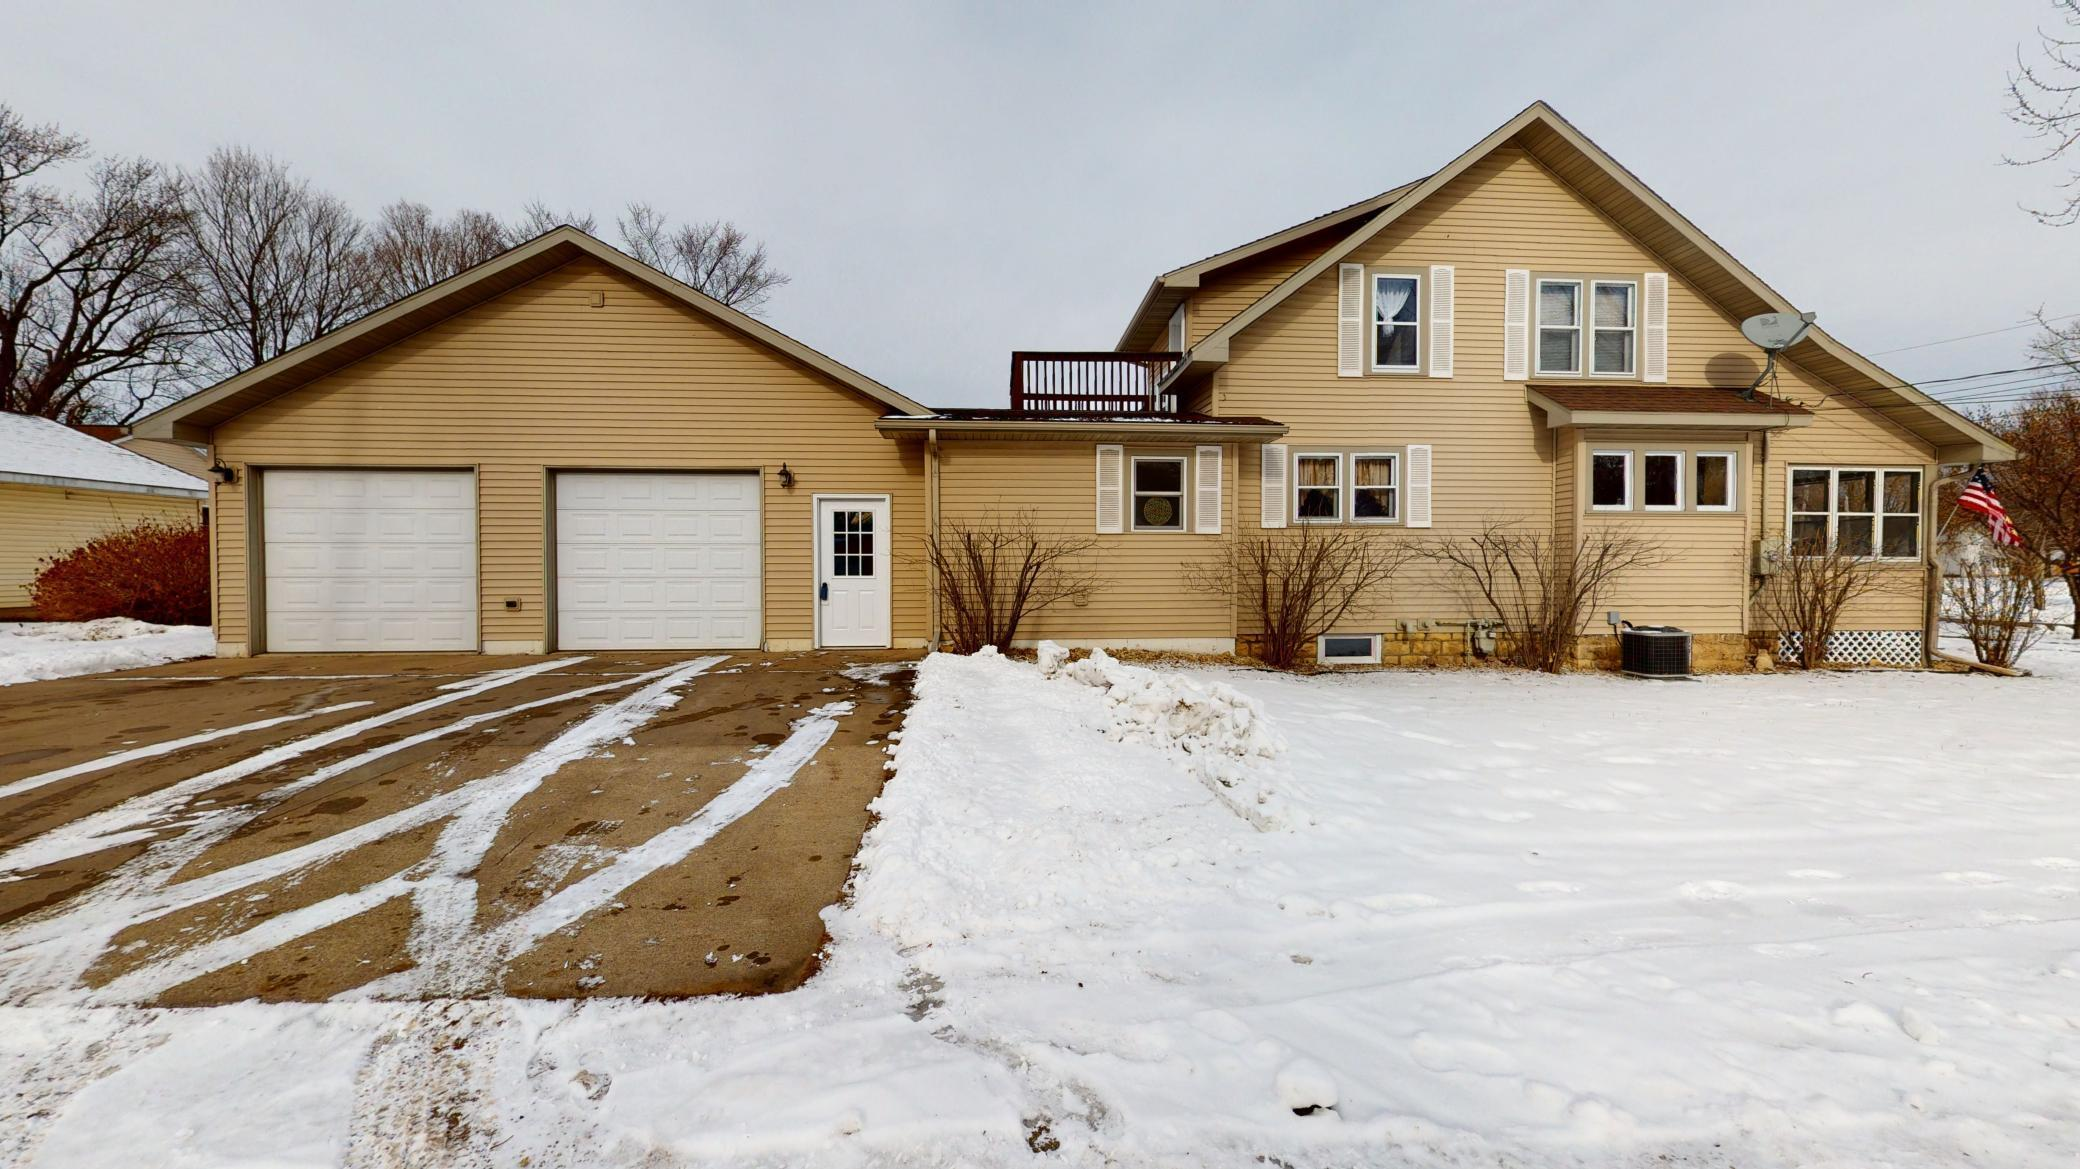 16895 S 9th Street Property Photo - Galesville, WI real estate listing